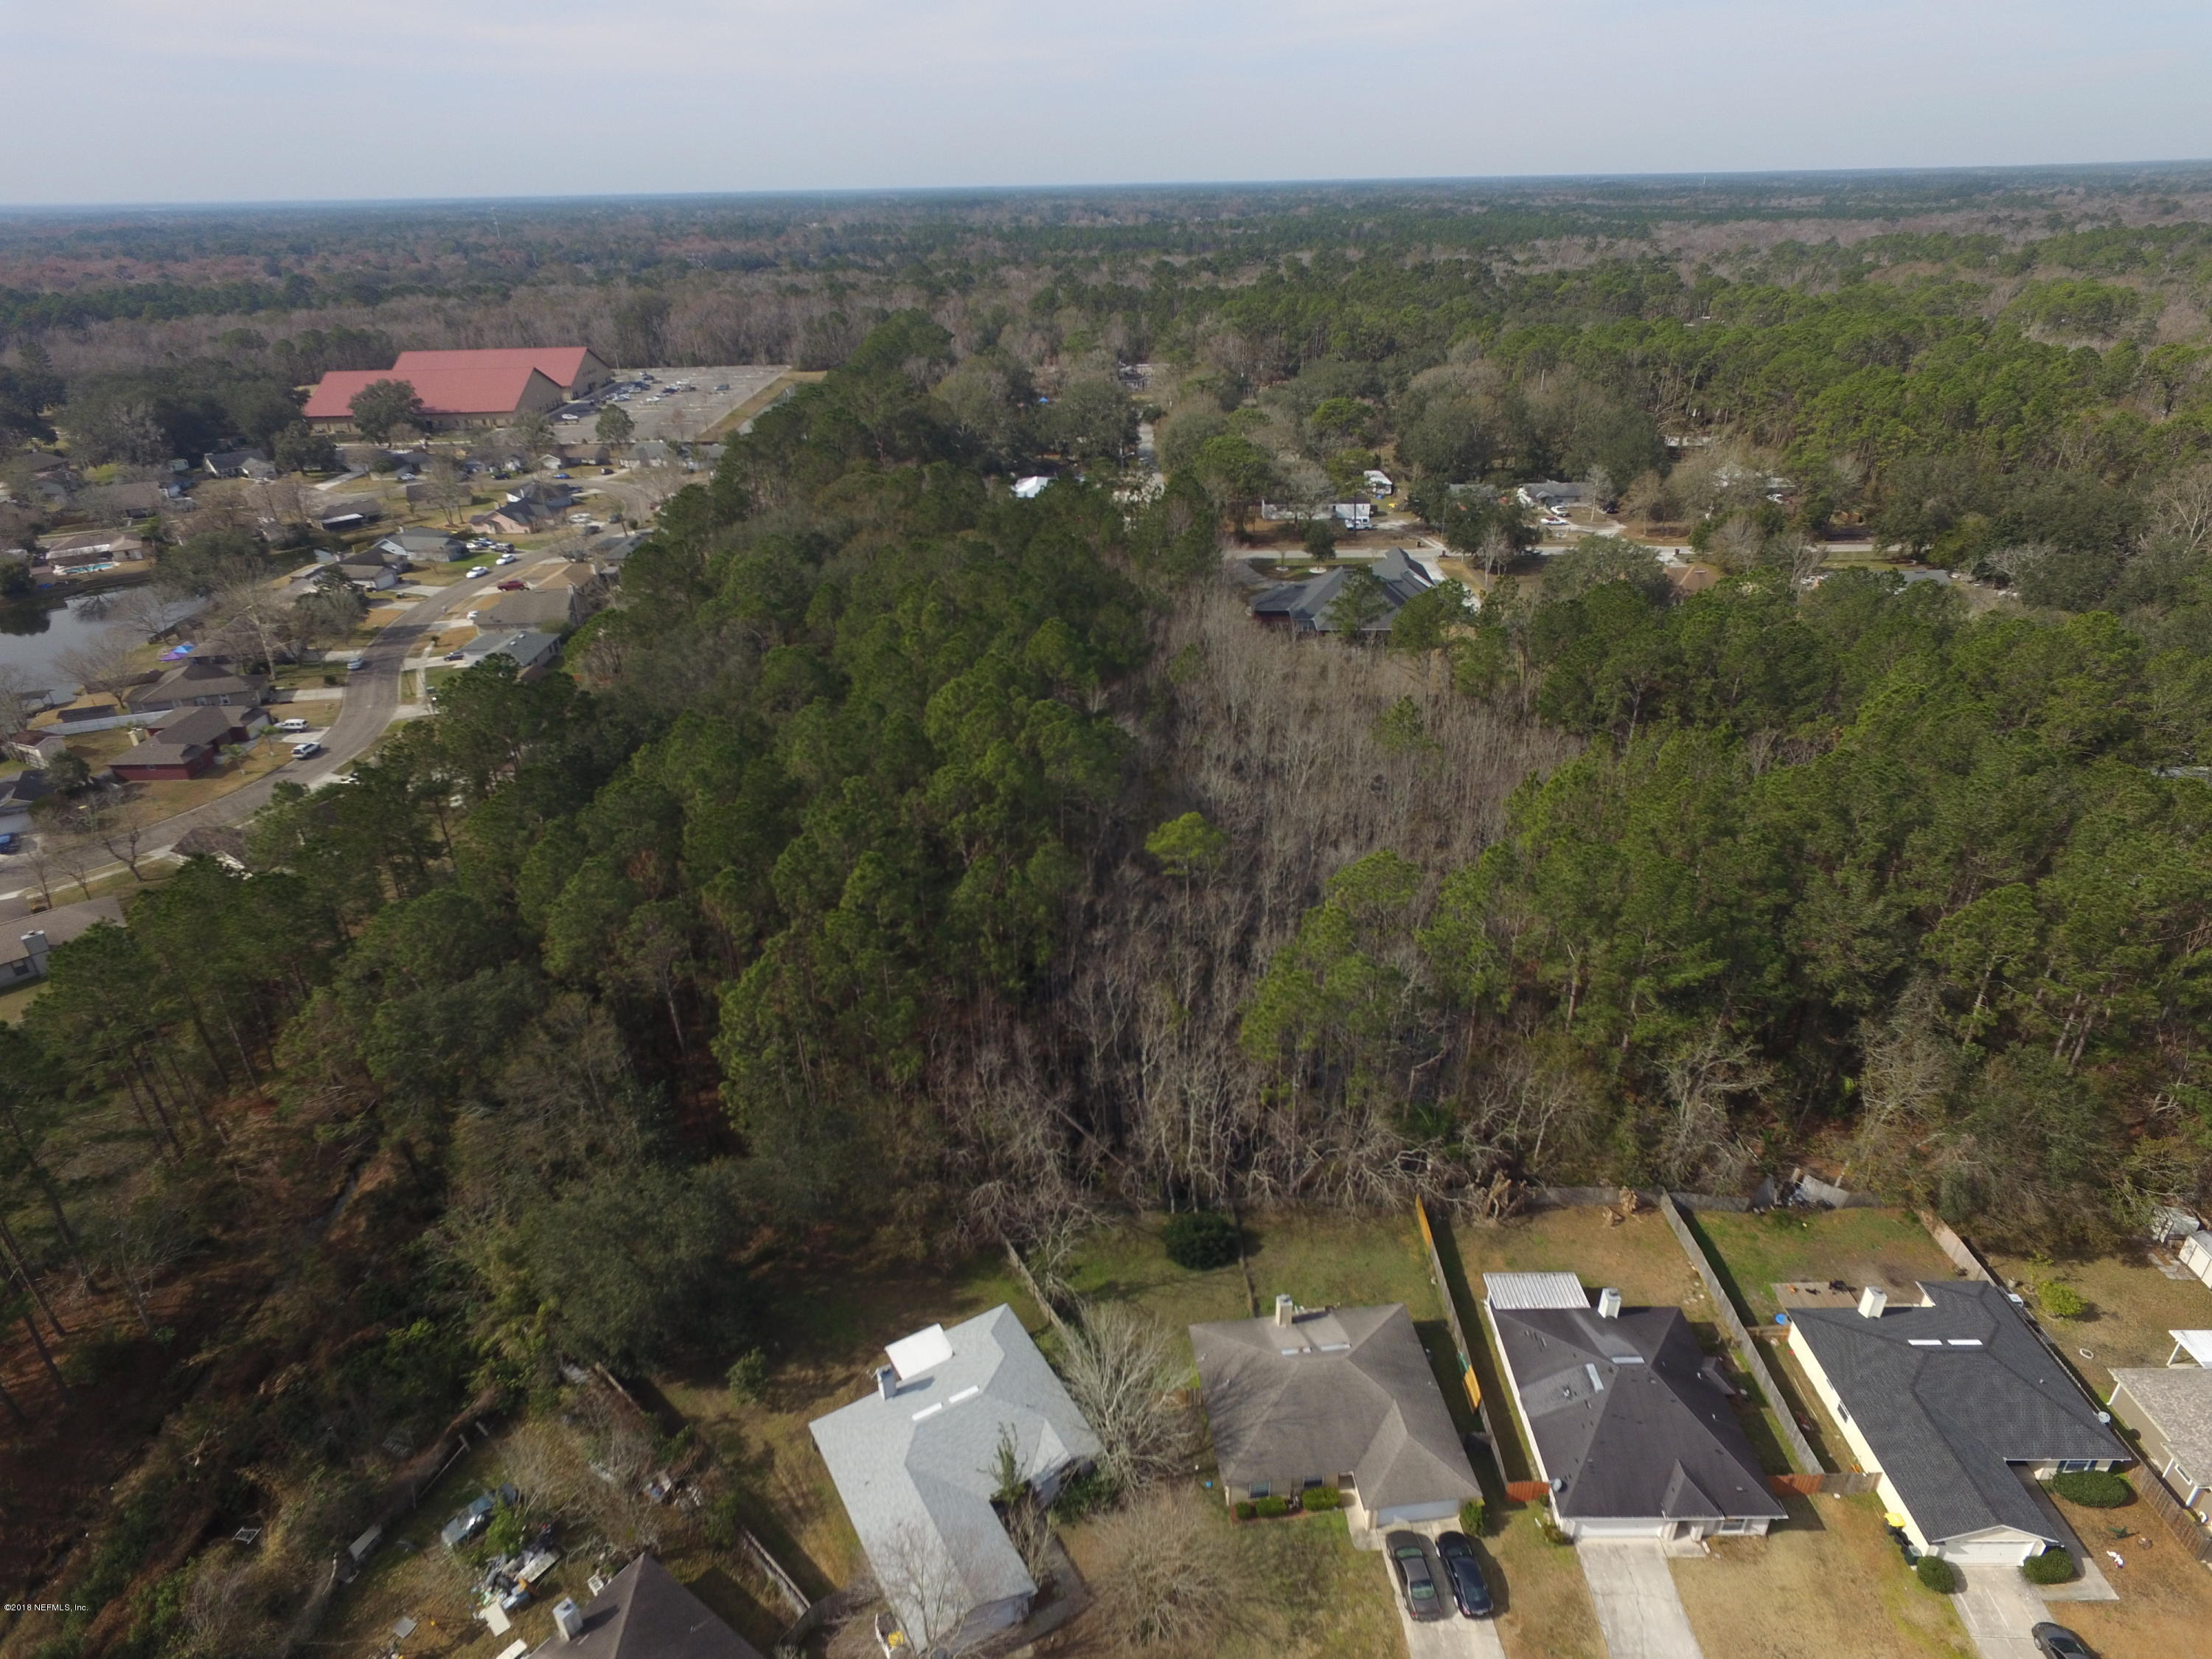 0 NECIA, JACKSONVILLE, FLORIDA 32244, ,Vacant land,For sale,NECIA,904257